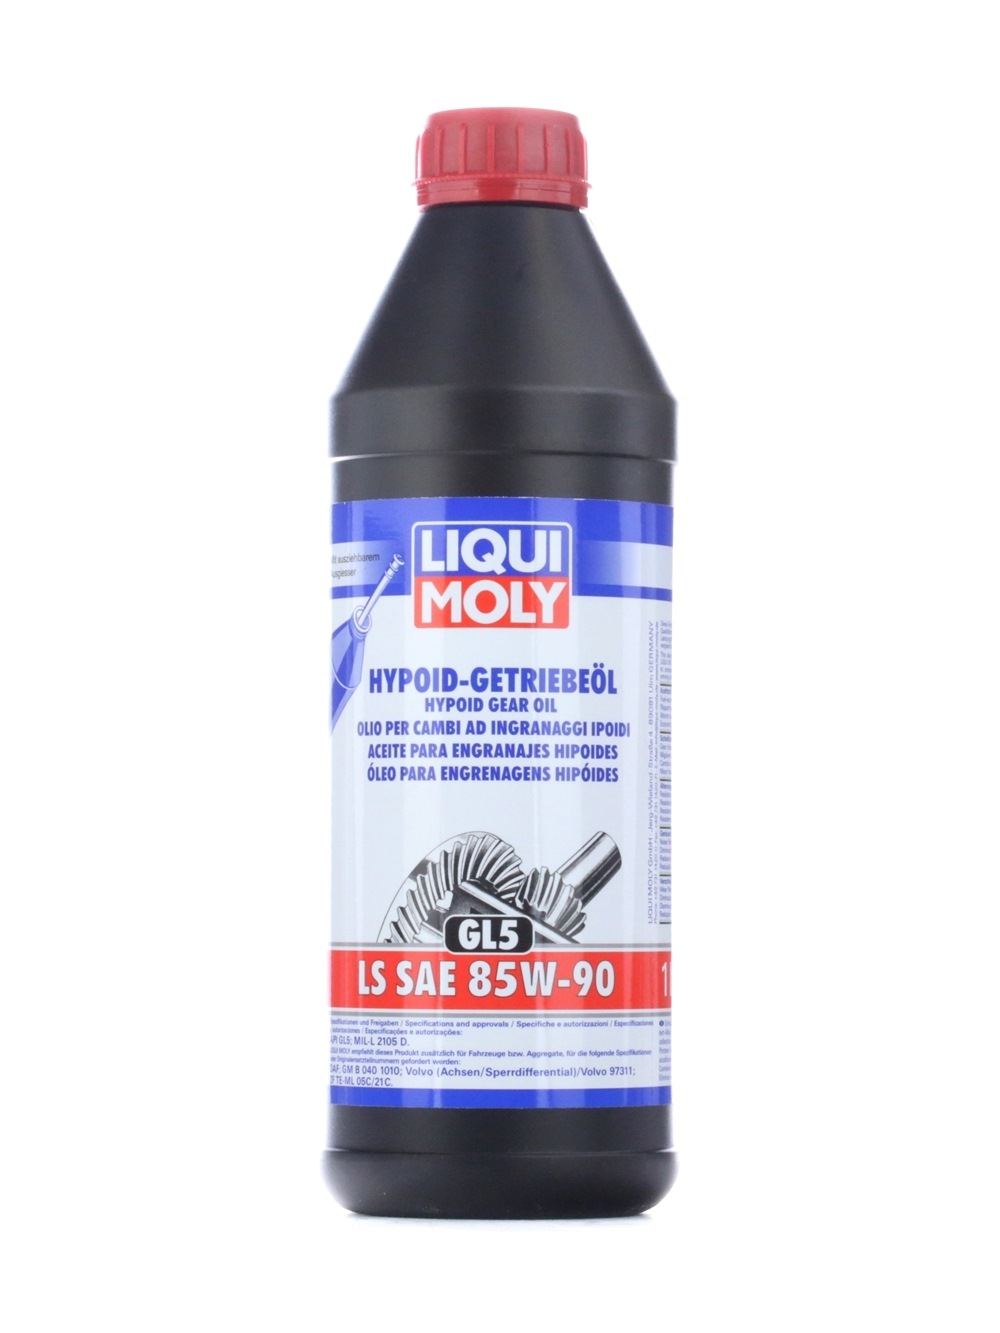 ZFTEML21C LIQUI MOLY Hypoid GL5, LS for hypoid gear transmission Axle Gear Oil 1410 cheap